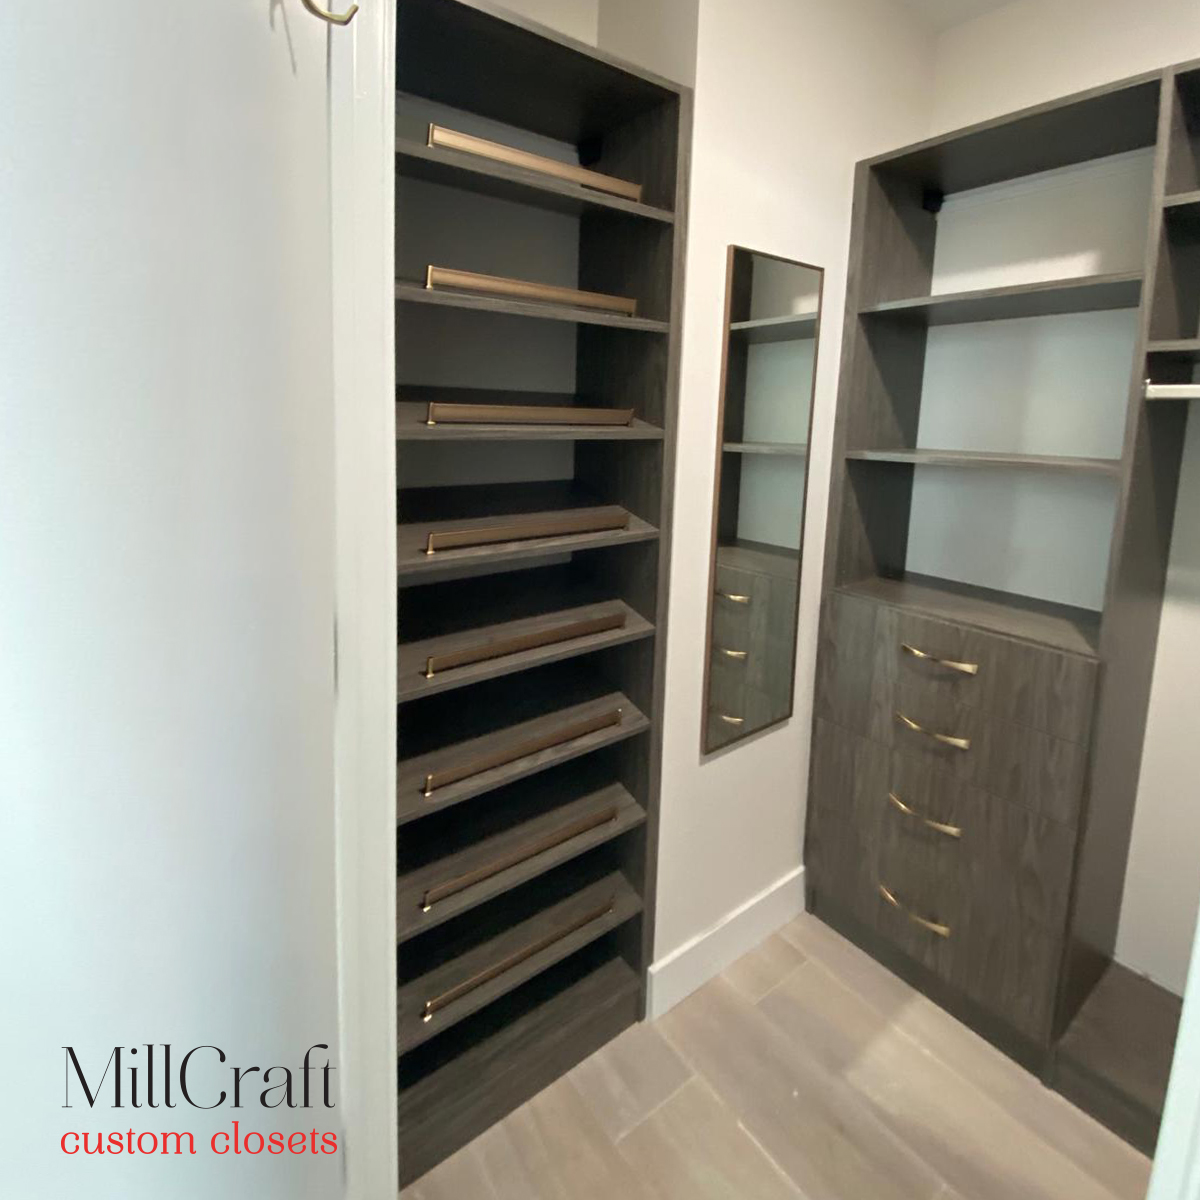 You are able to allocate a special space to your clothes, with MillCraft Custom closets For more information http://millcraft.us #kitchen #closet #closets #kitchenlove #slabkitchendoor #kitchendesign #customdesign #kitchencabinets #cabinetry #getorganized #cook #customkitchenpic.twitter.com/LkIw0Pp5Mt